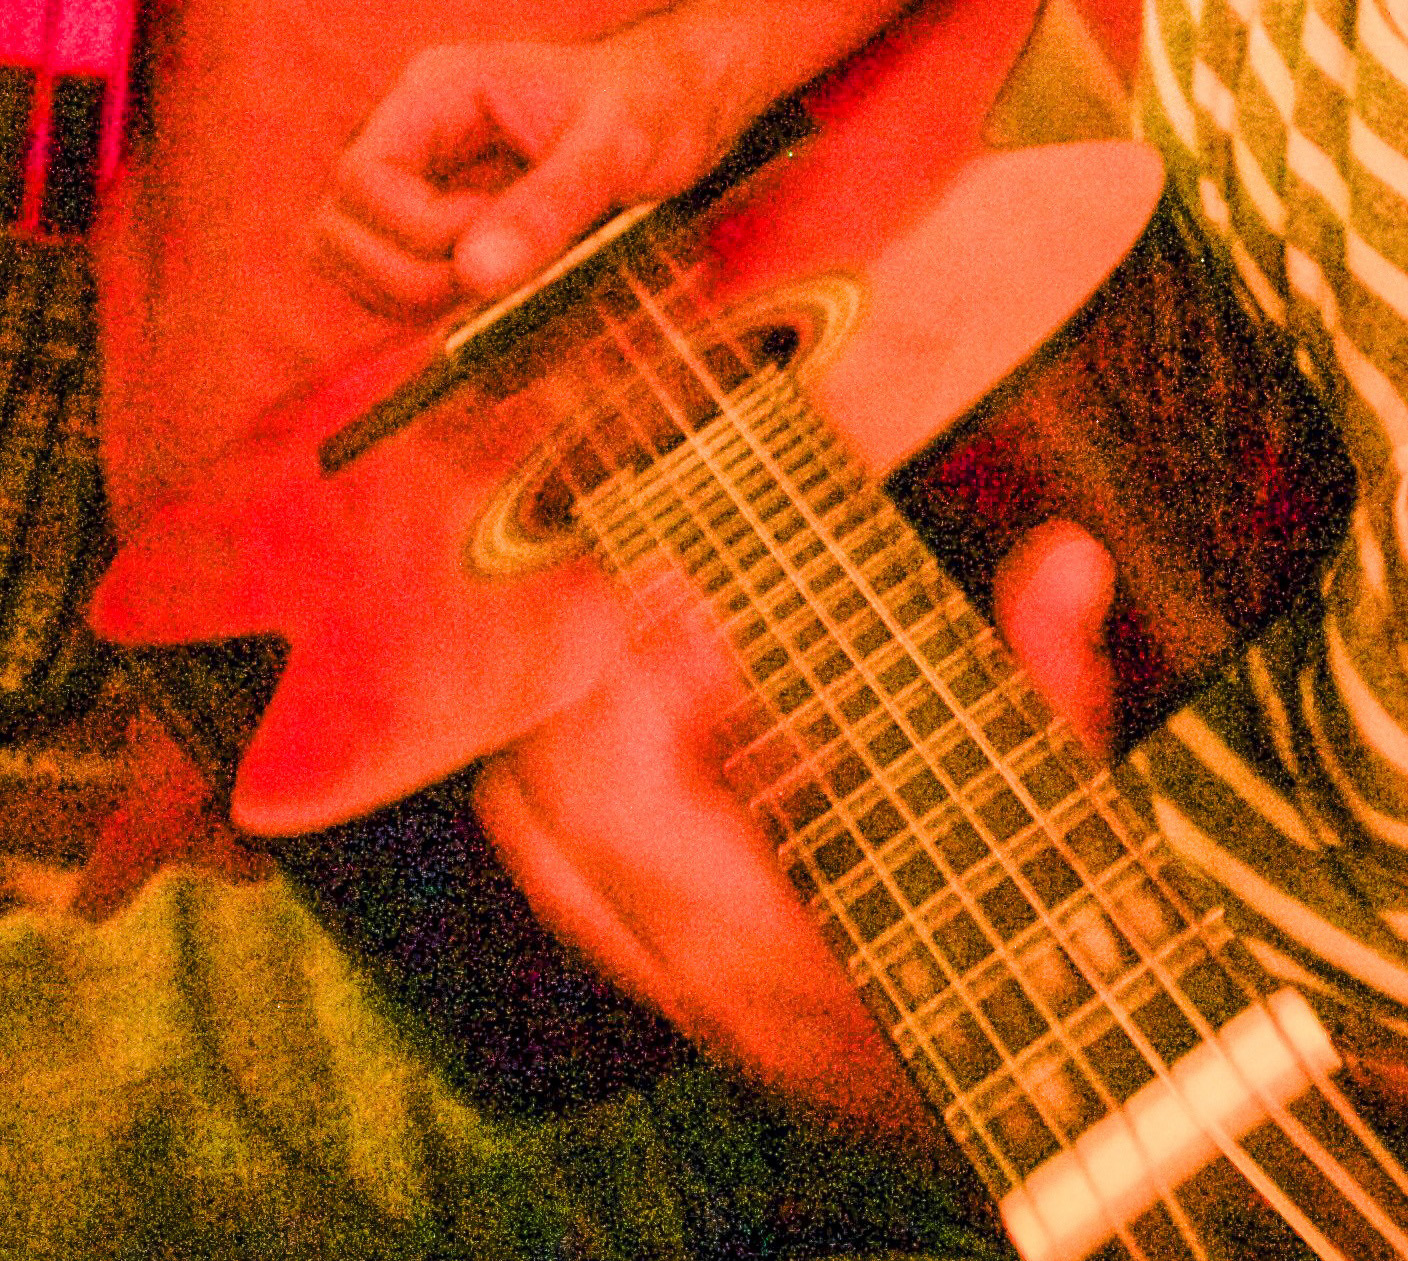 Manjess avec la guitare edited3